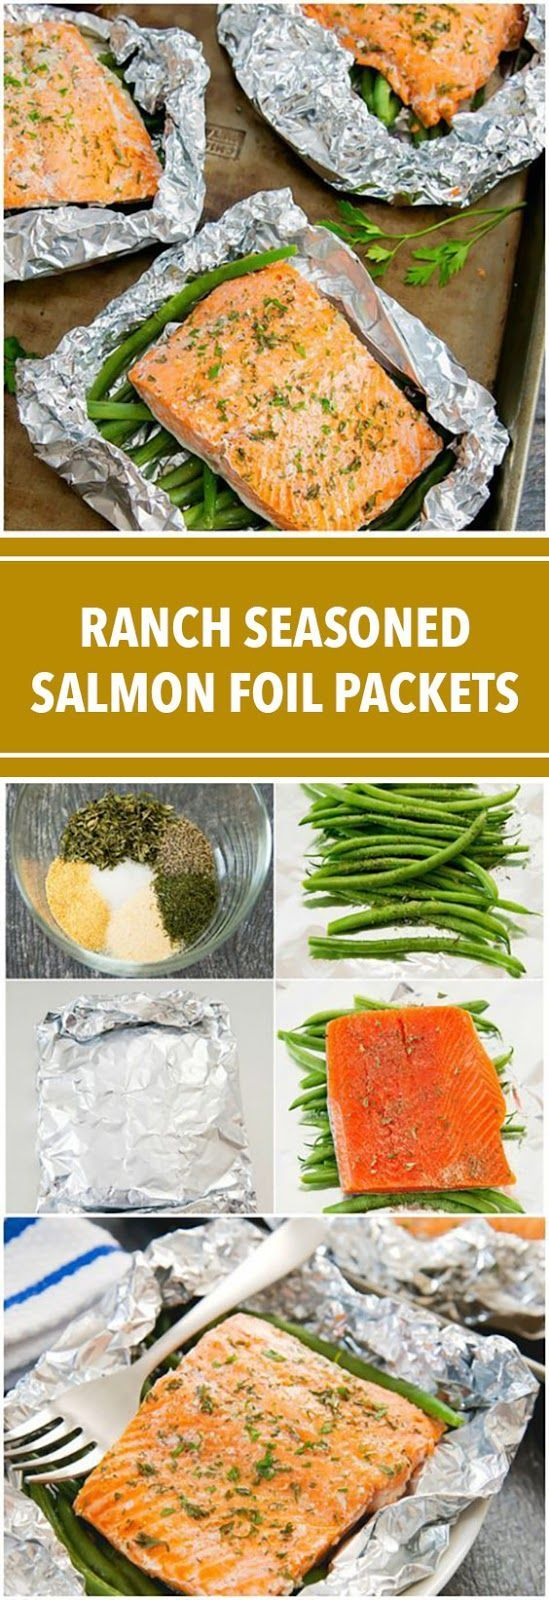 Ranch Seasoned Salmon Foil Packets